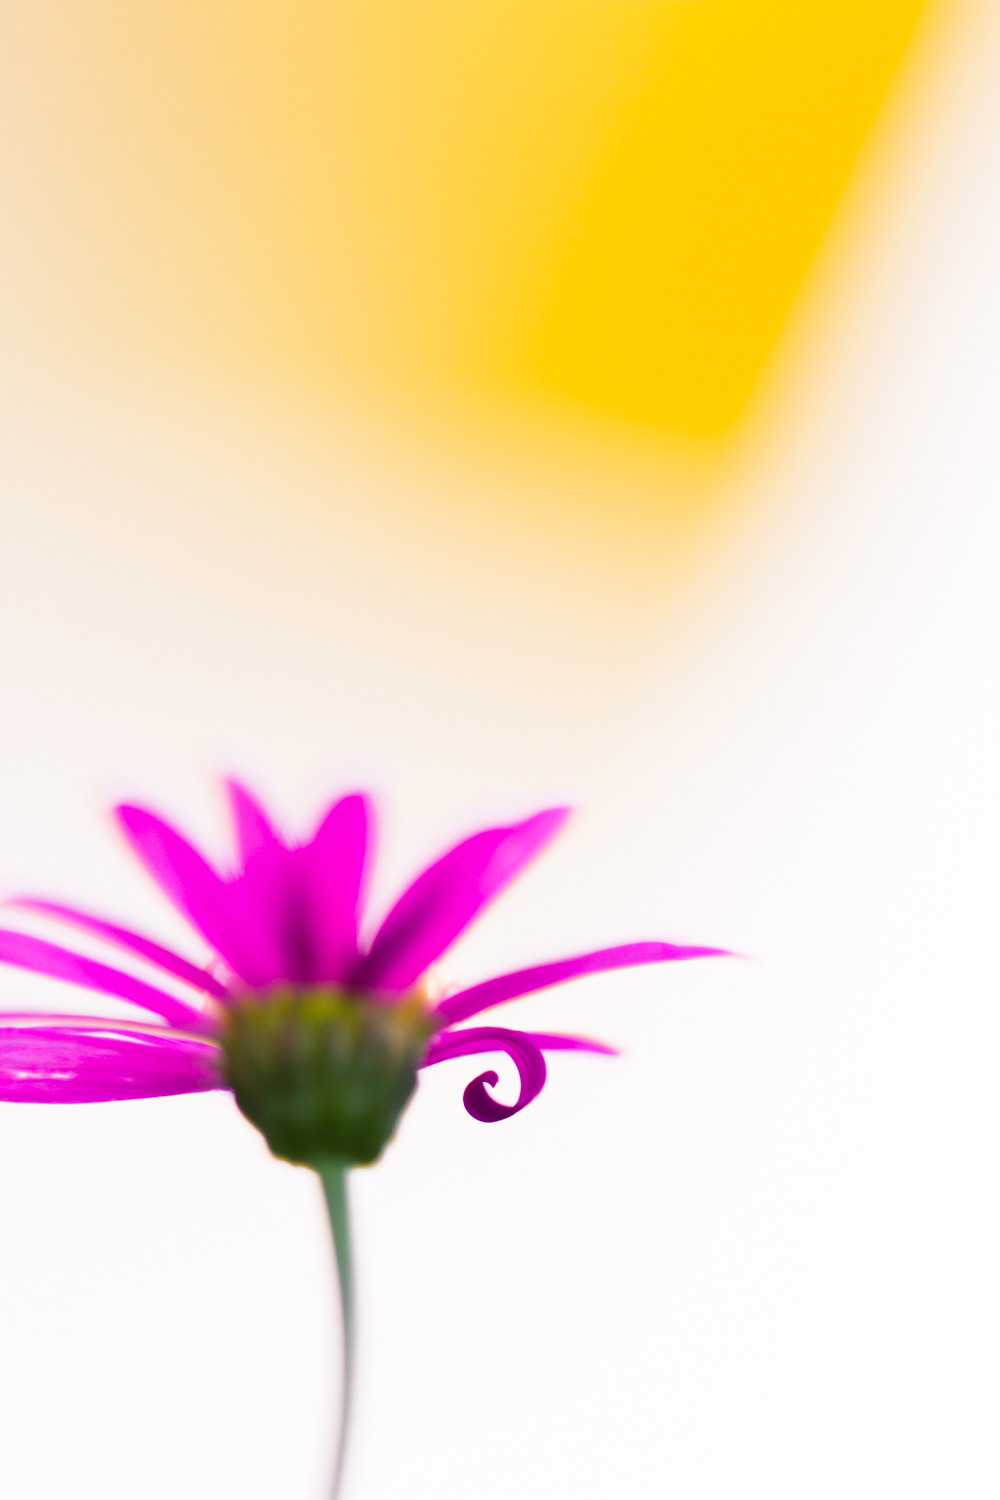 Macro image of a flower with a very shallow depth of field